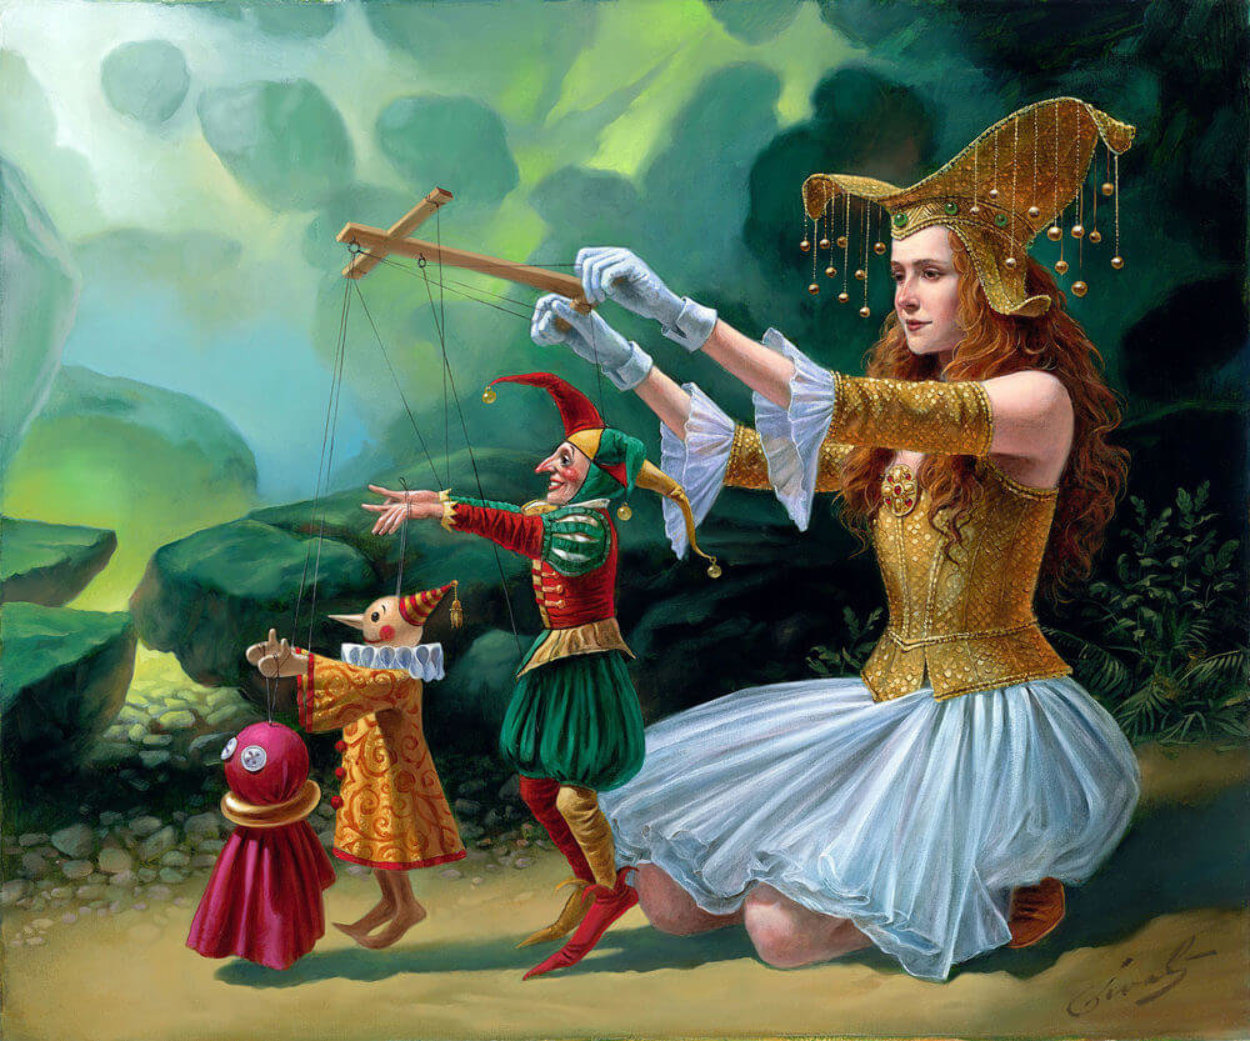 Evolution 2015 Limited Edition Print by Michael Cheval